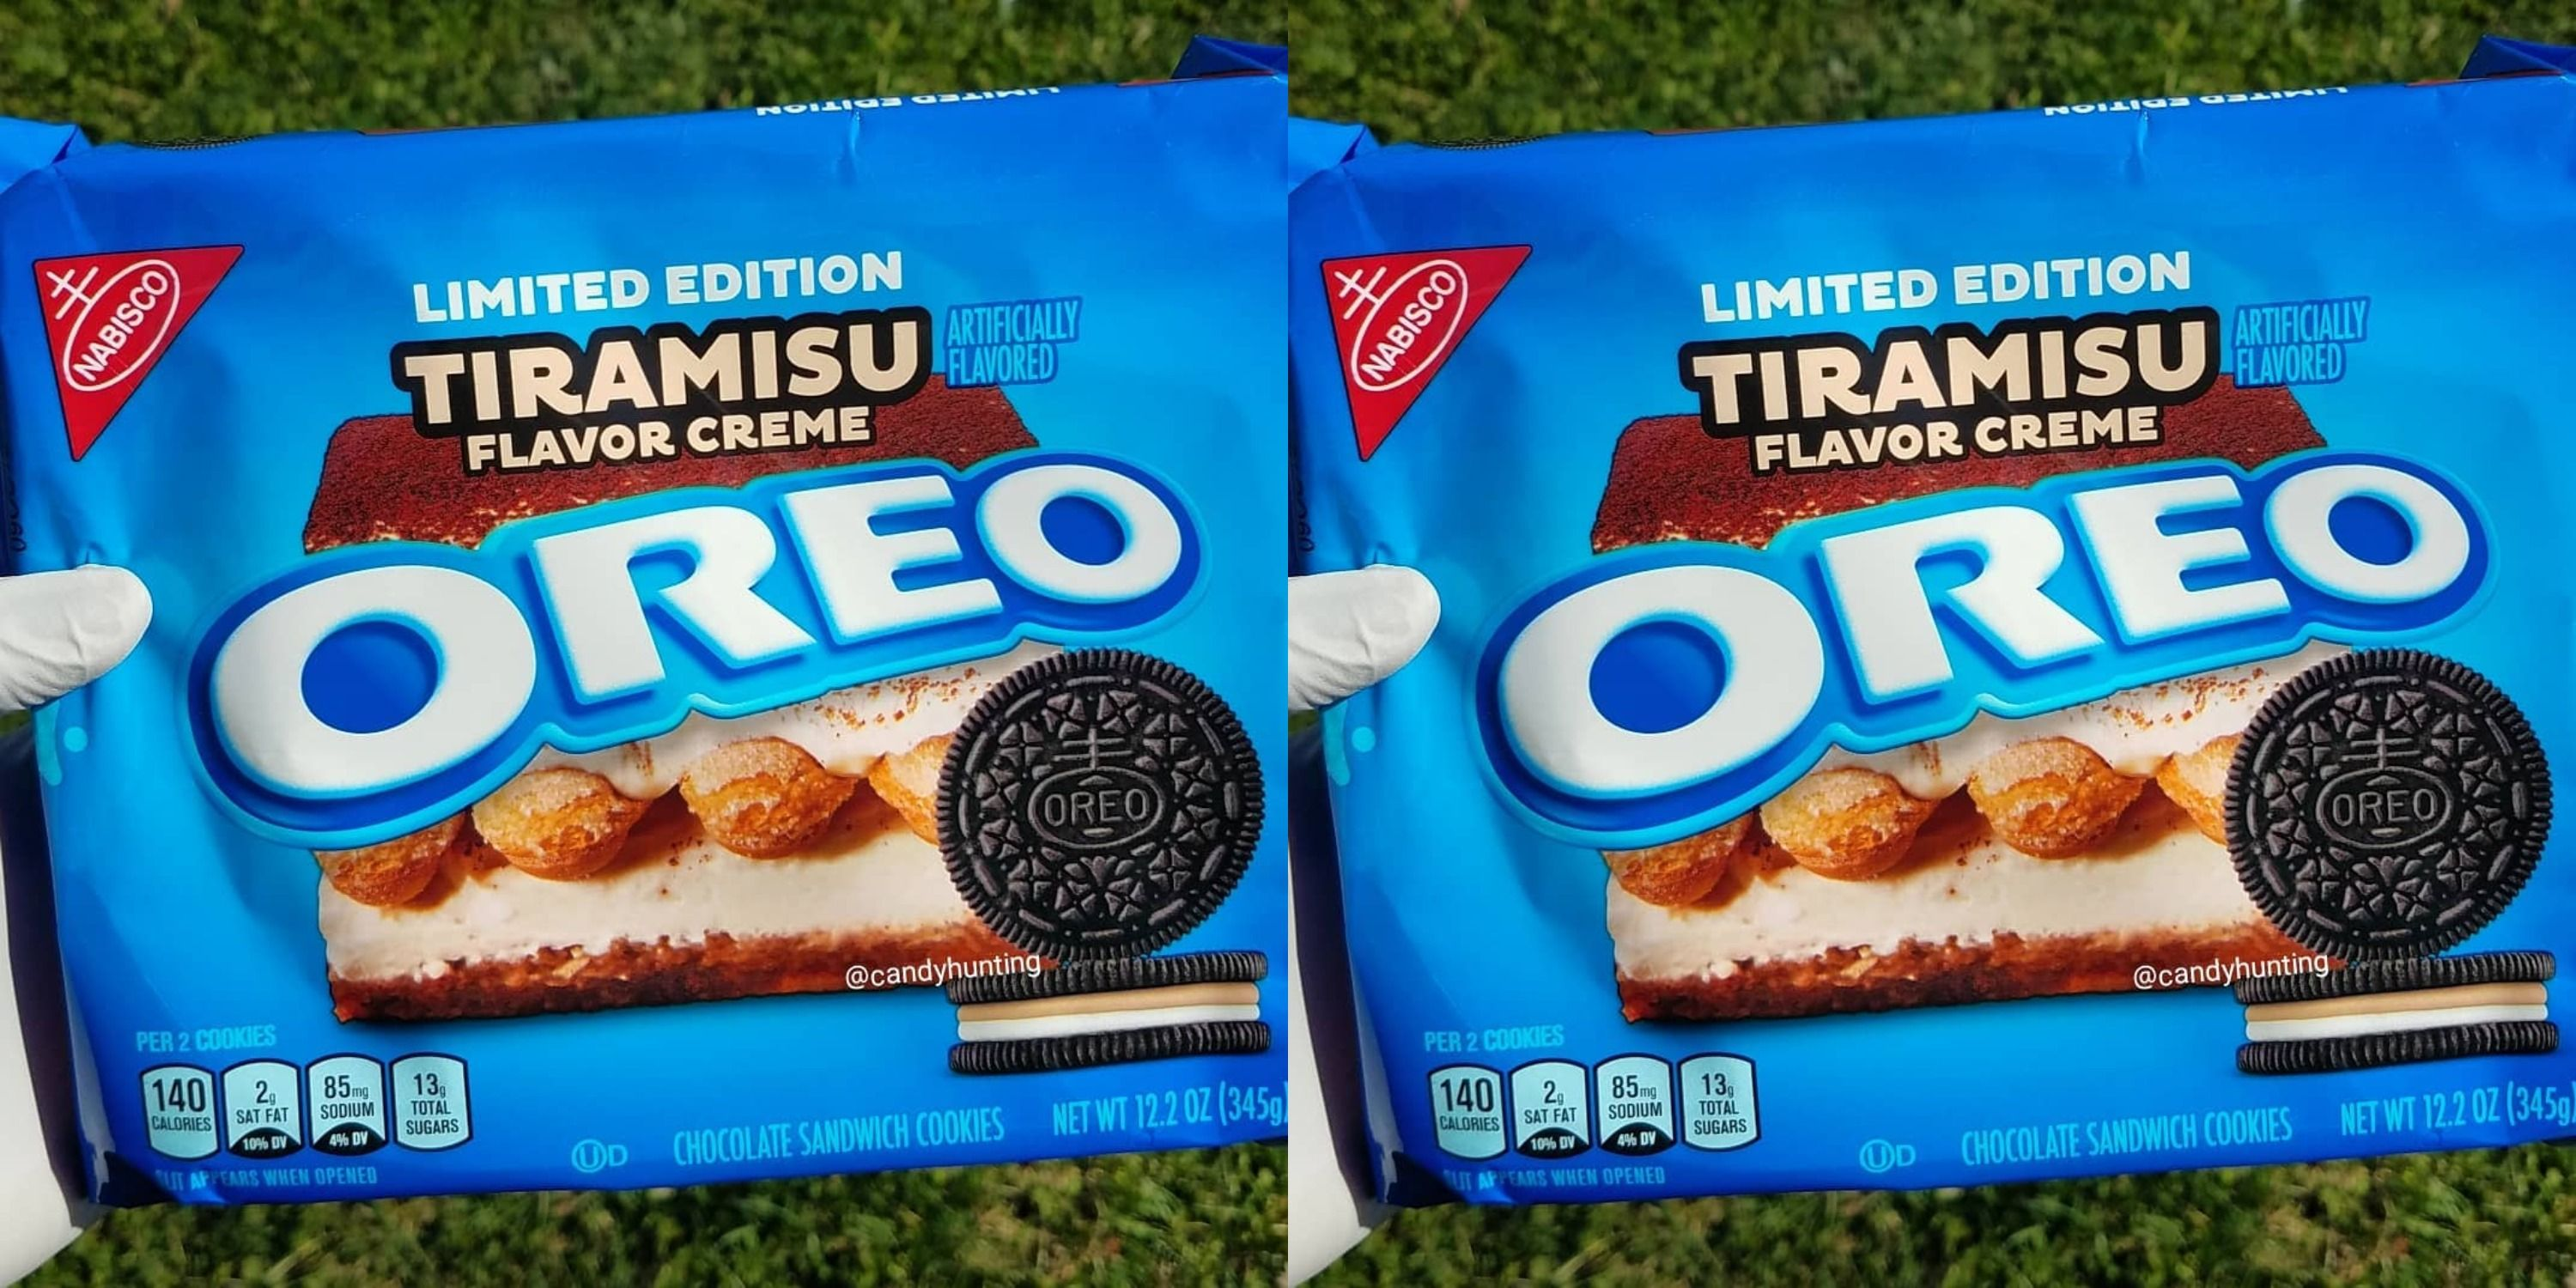 Oreo Finally Released Its Tiramisu Flavor